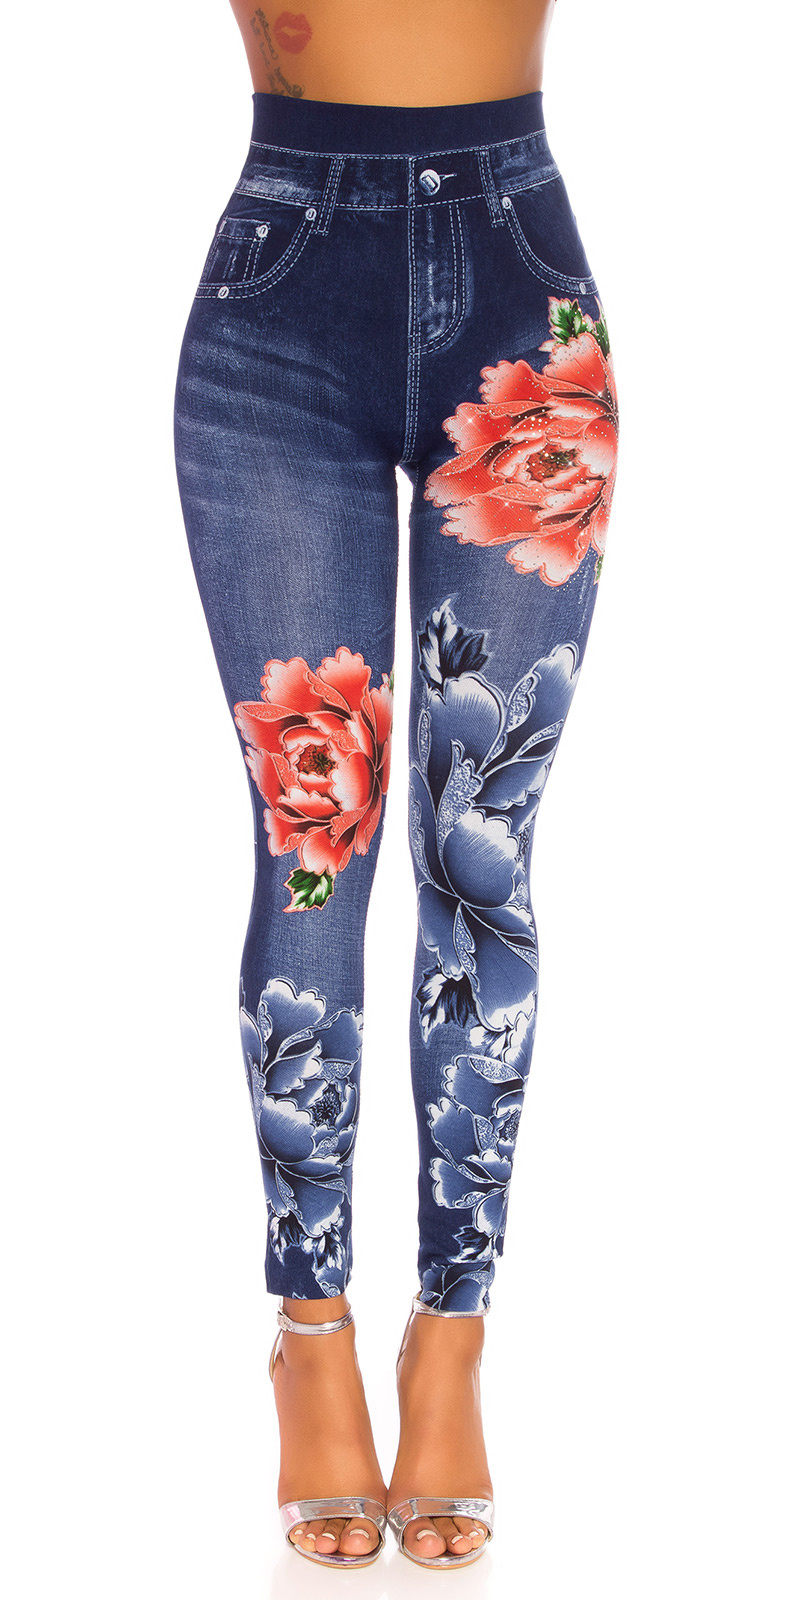 Sexy hoge taille jeanslook leggings blauw